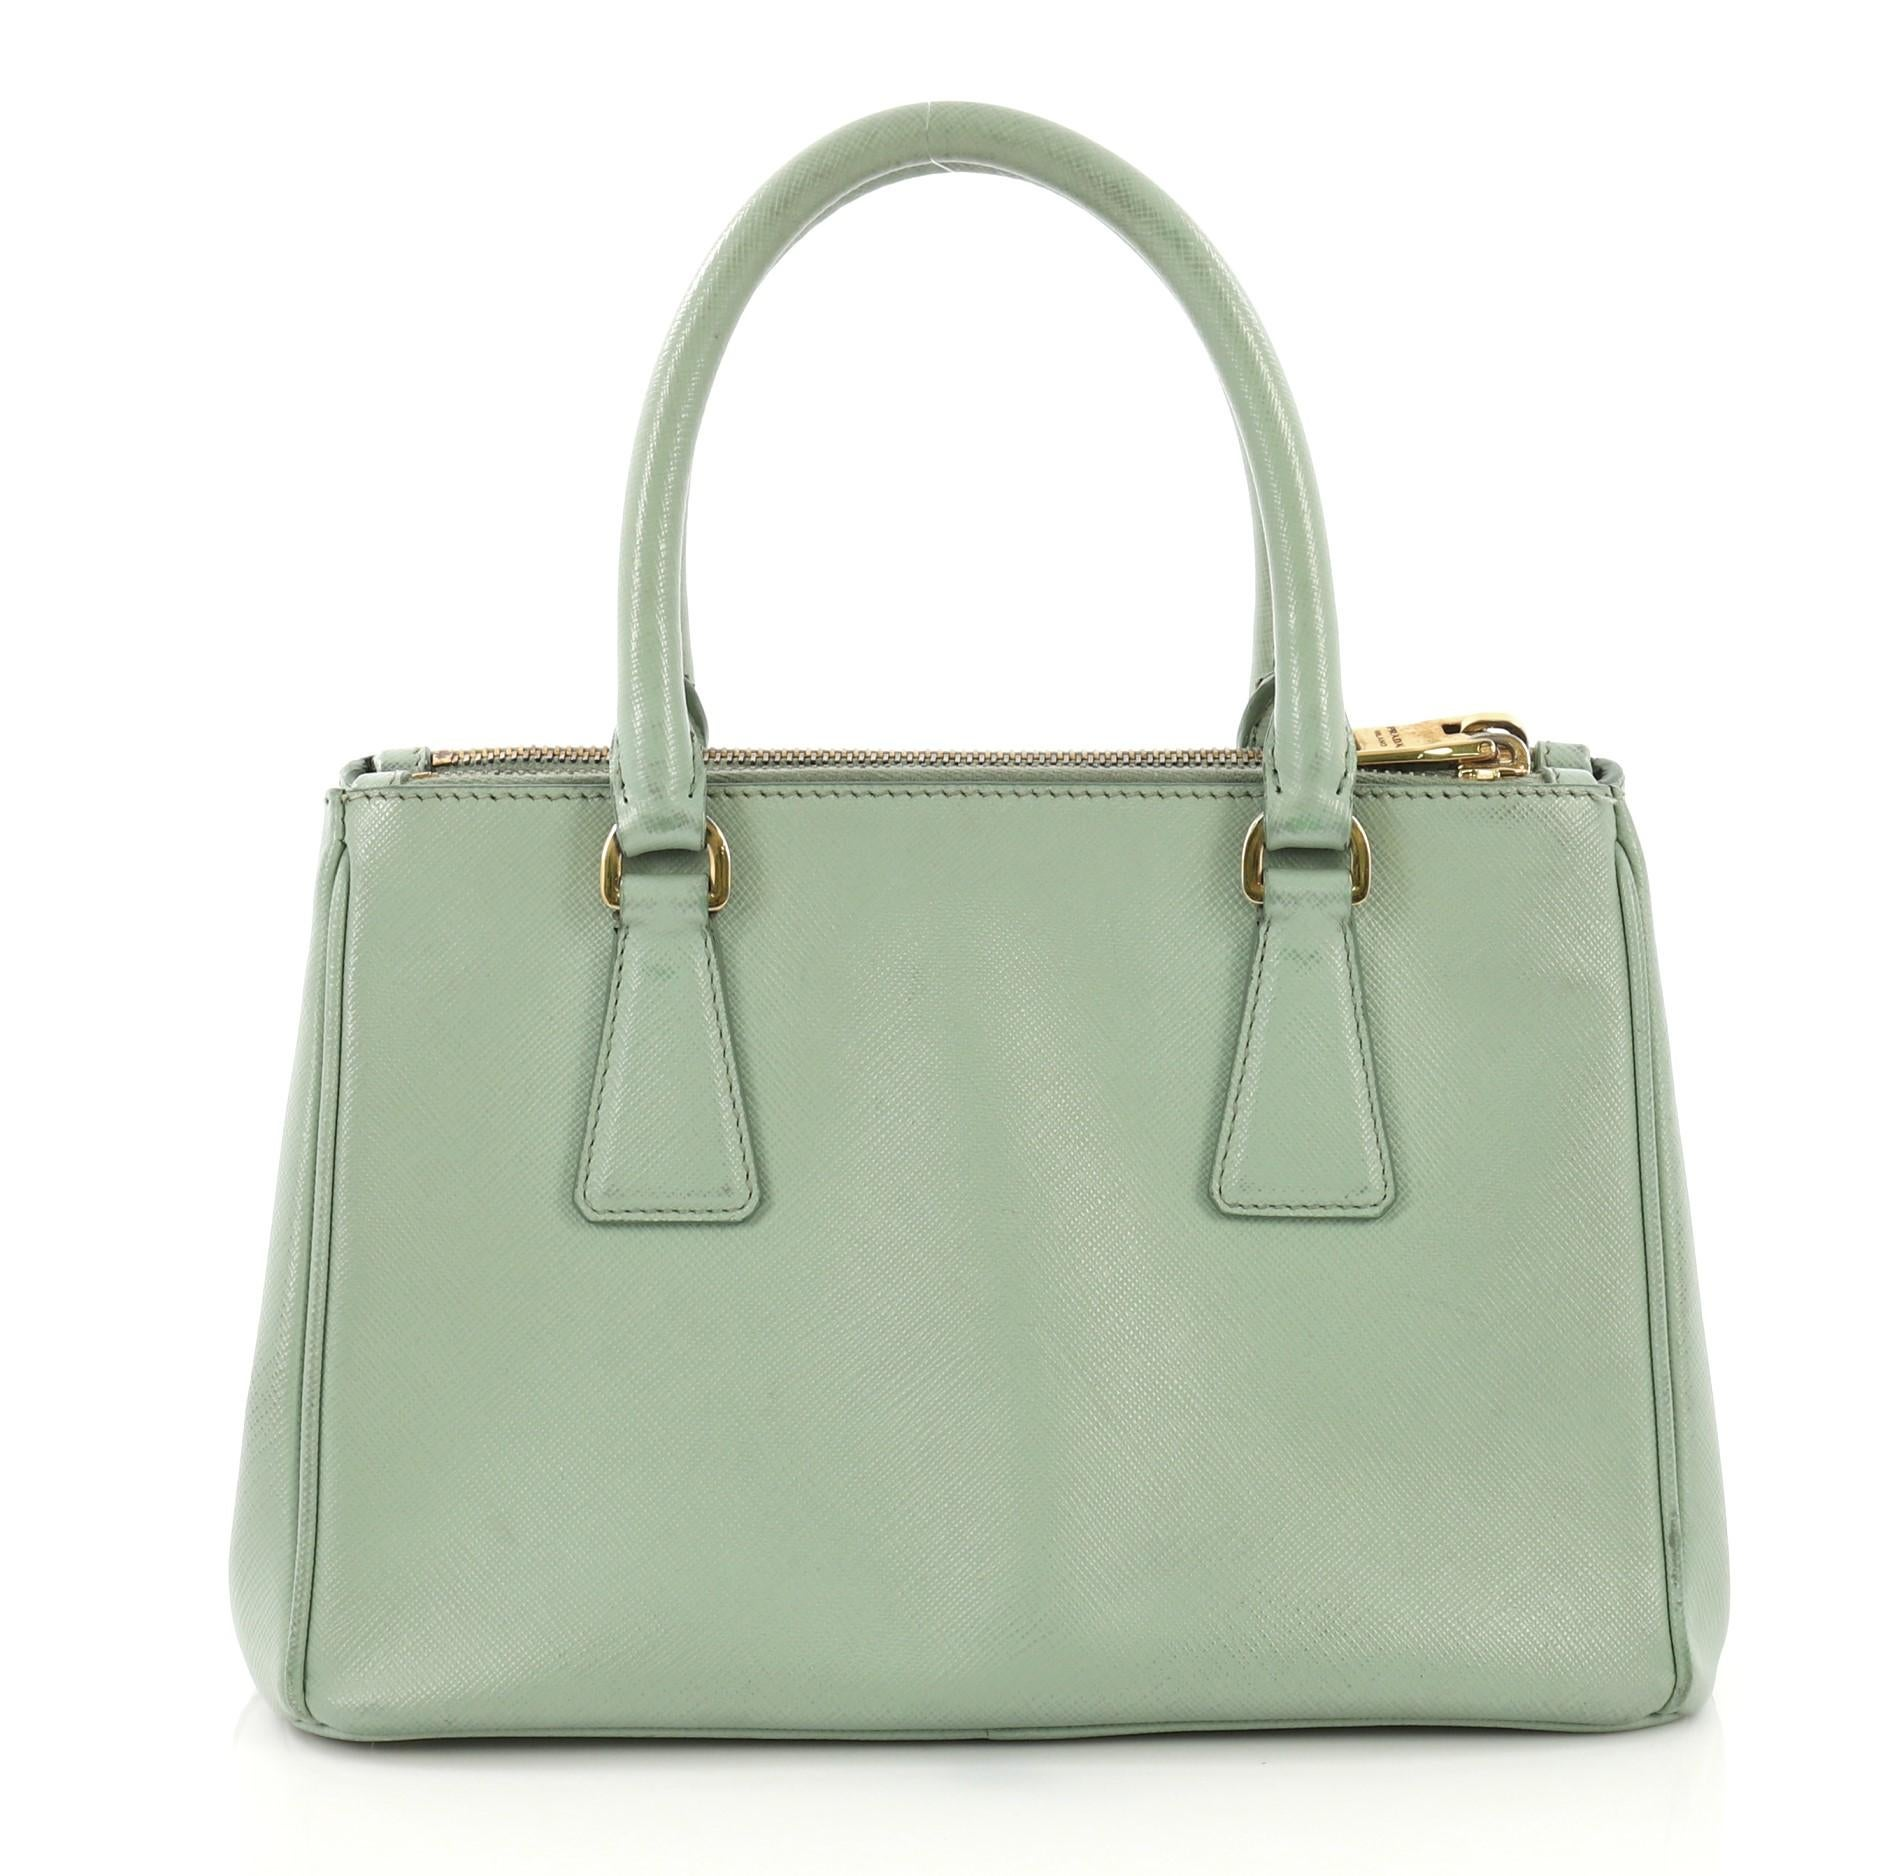 d0ebc29cd910 Prada Galleria Double Zip Tote Saffiano Leather Small For Sale at 1stdibs